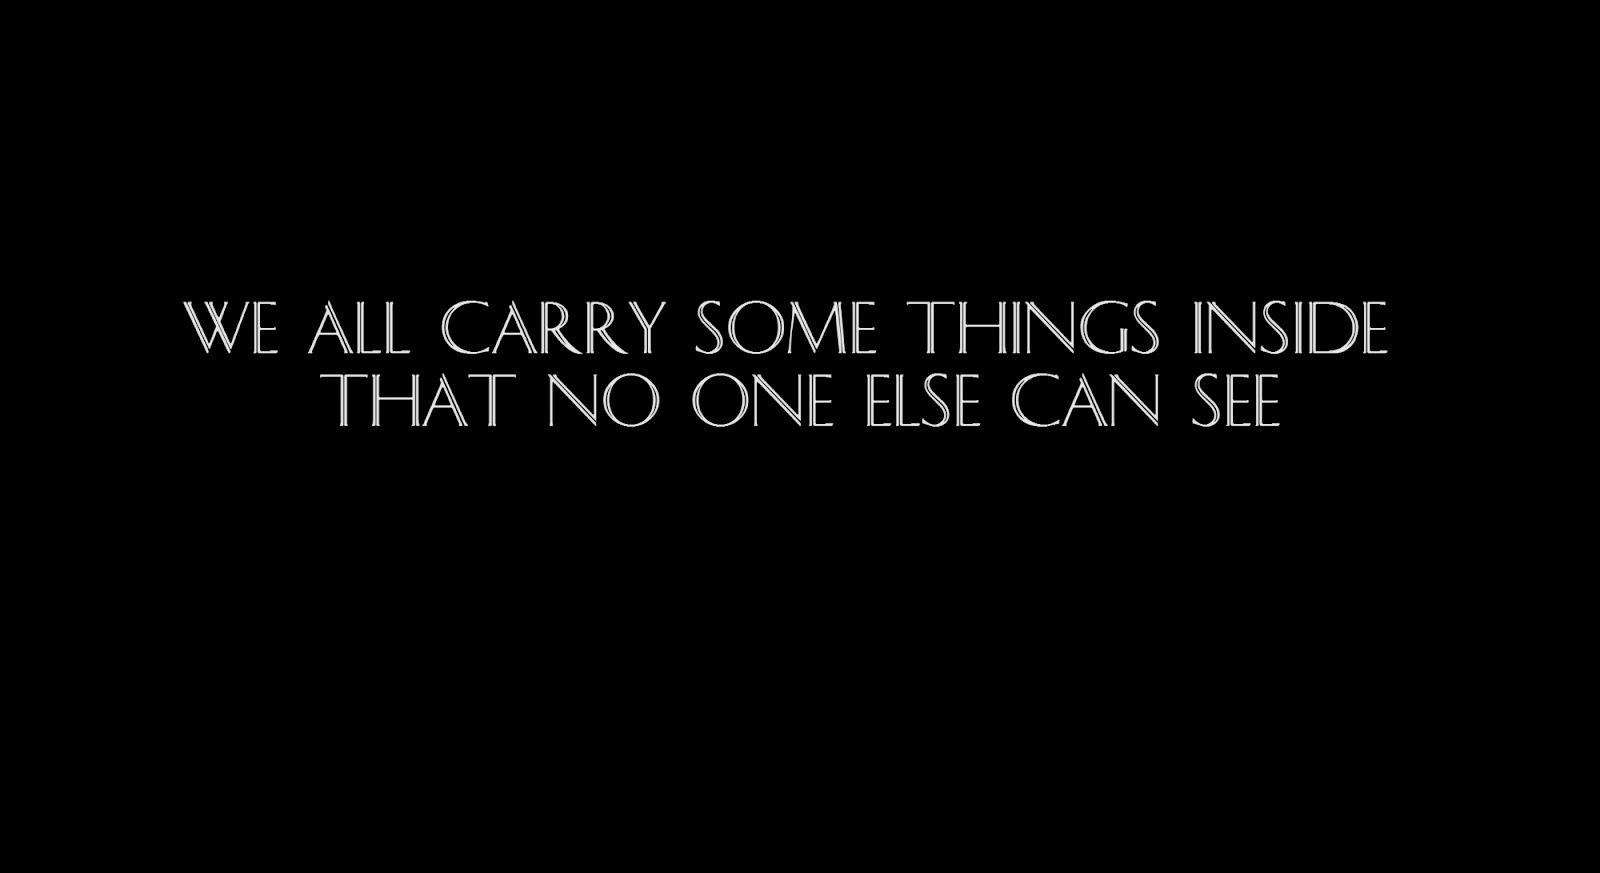 We all carry some things inside that no one else can see